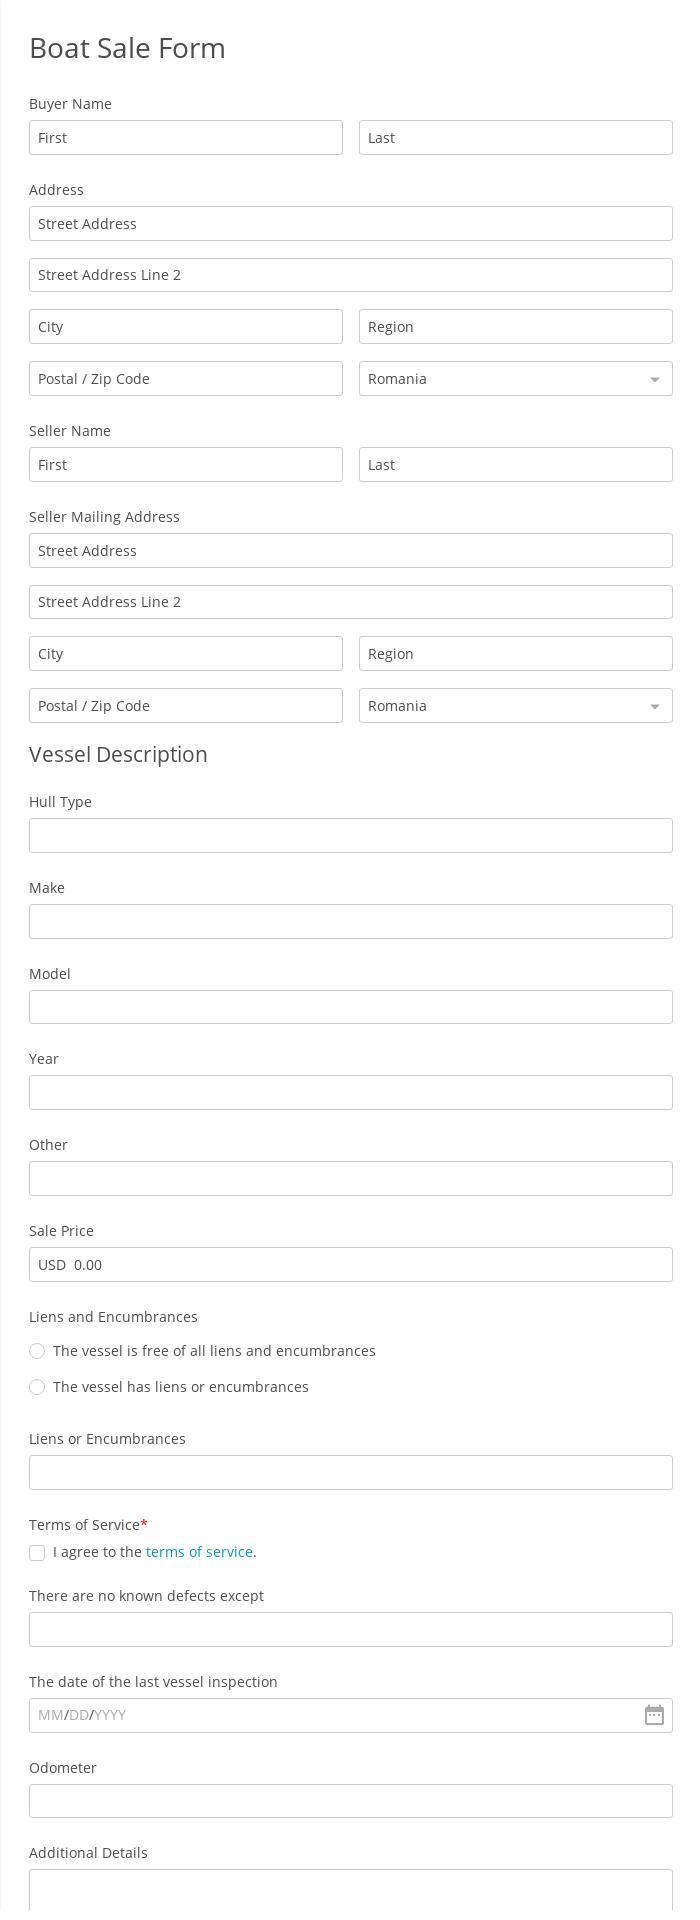 Boat Sale Form